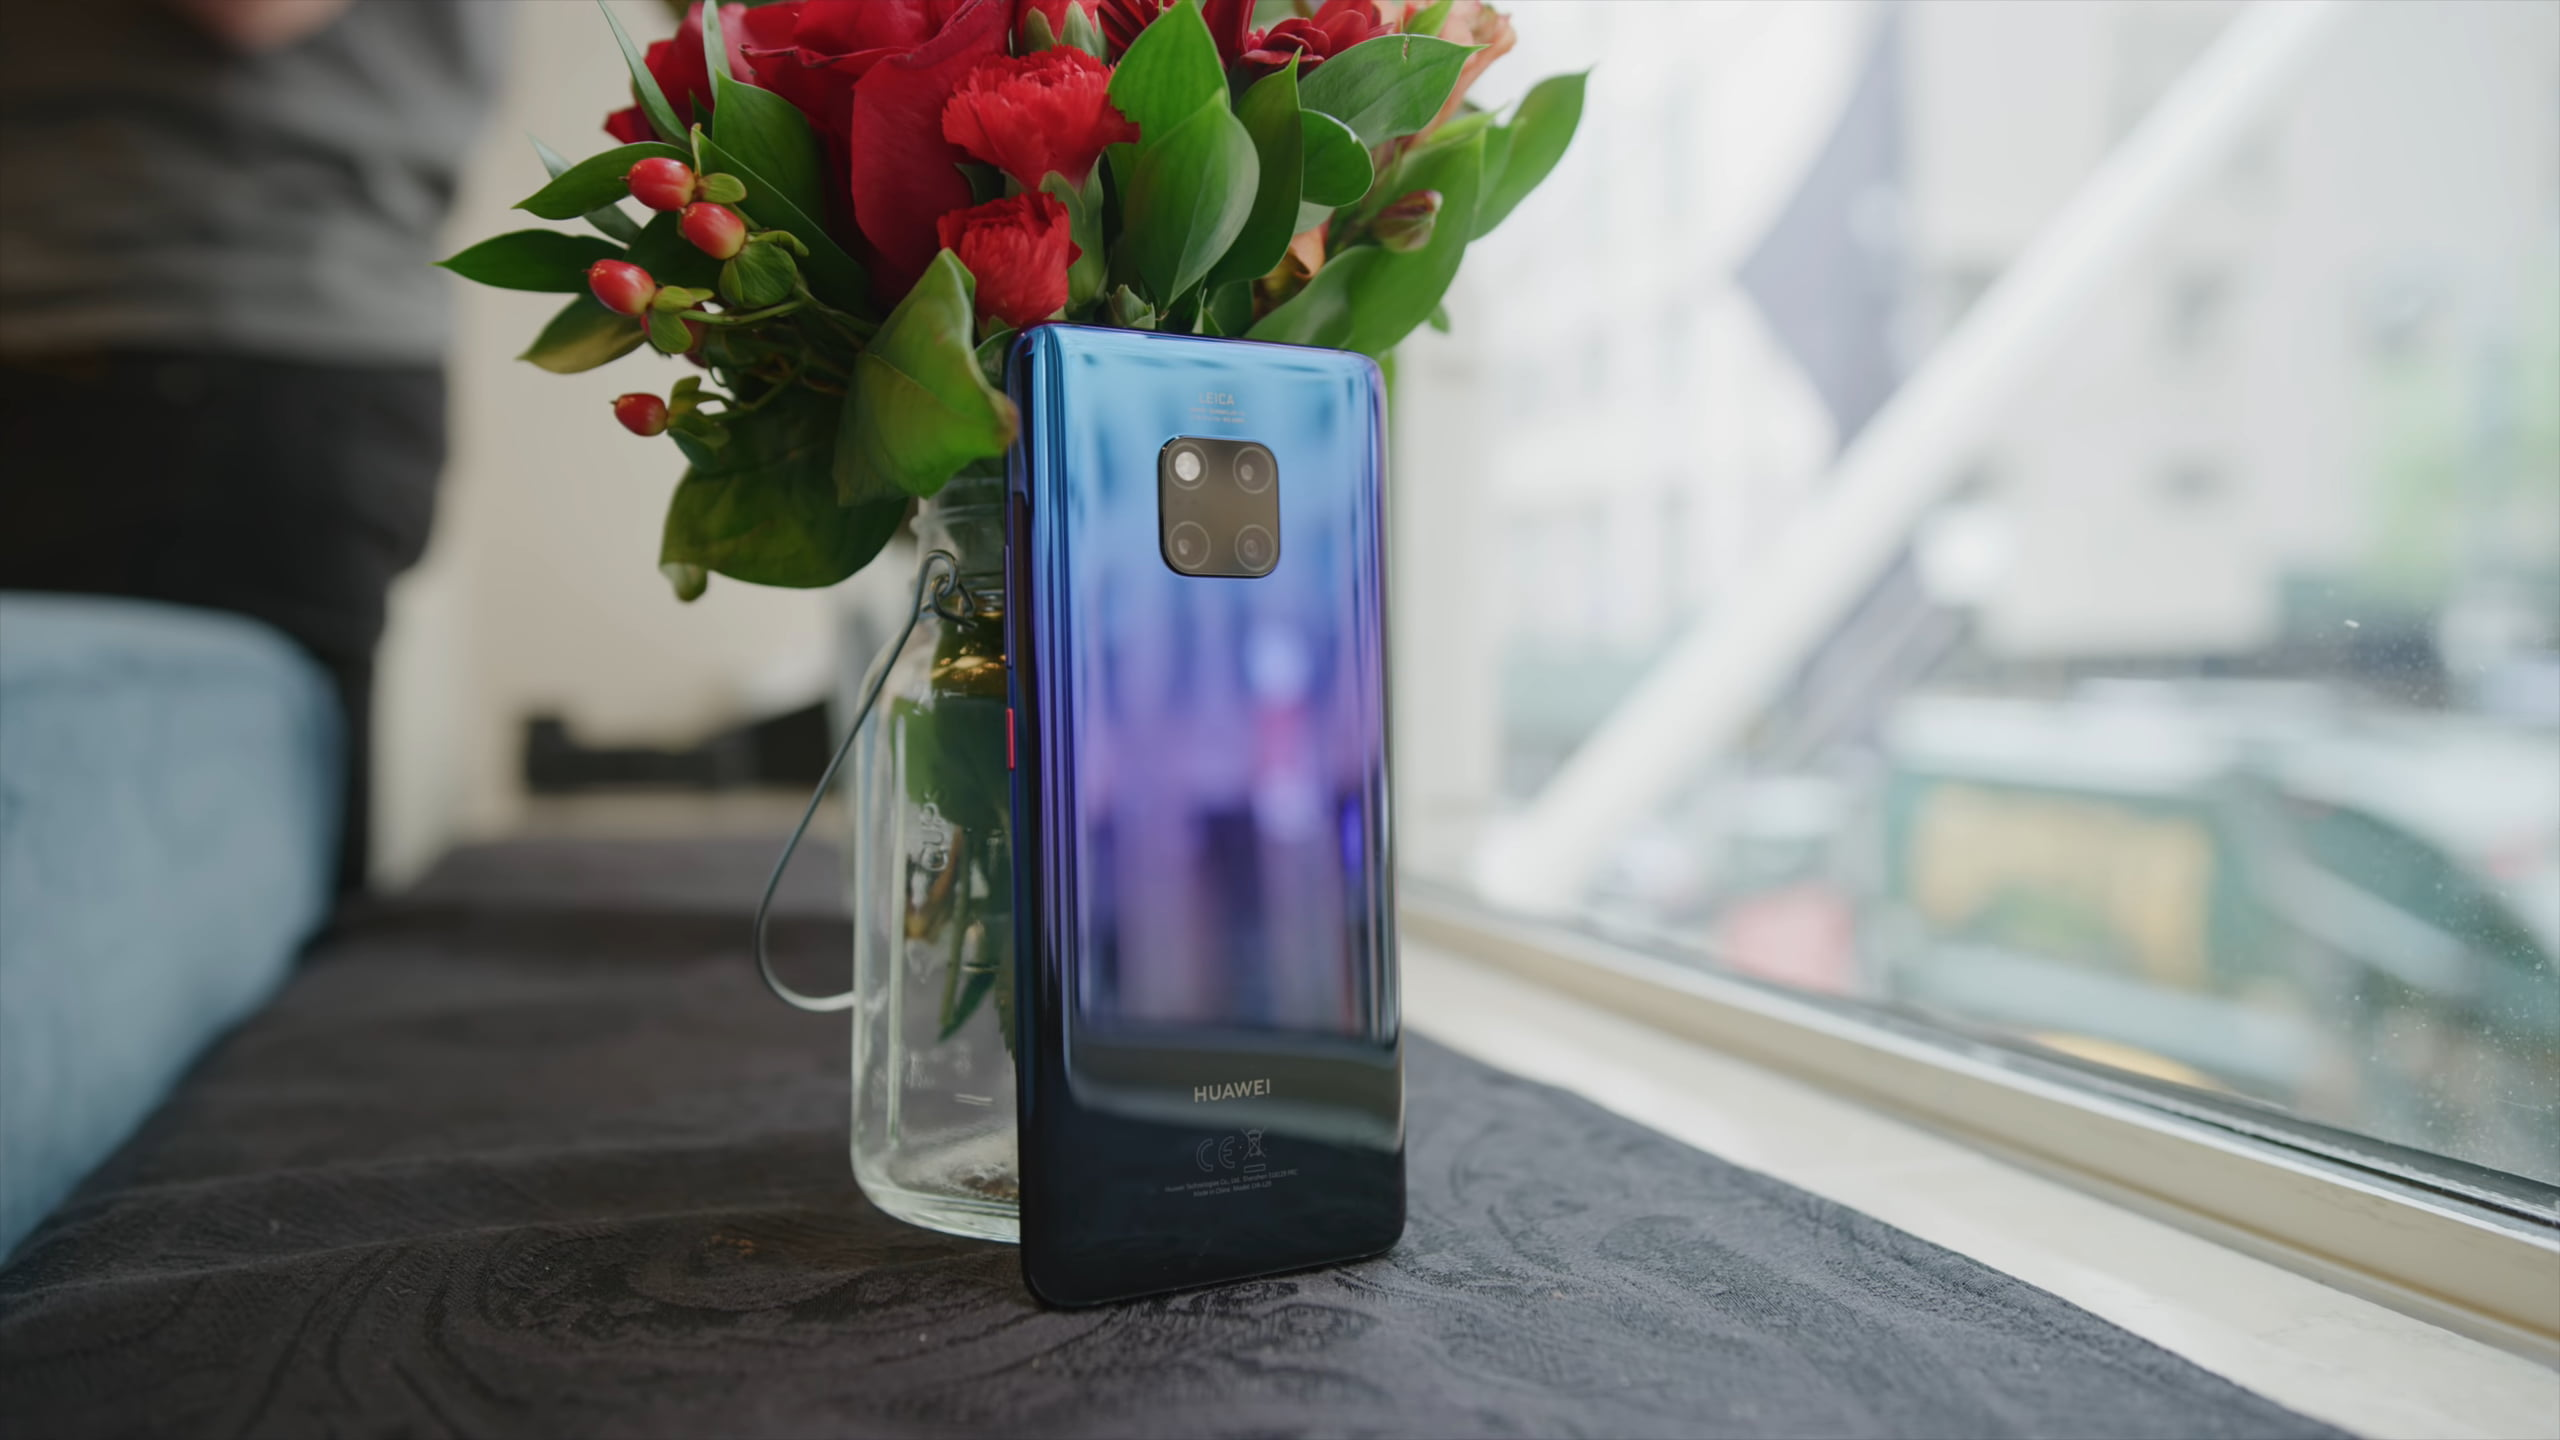 Huawei Mate 20 Pro: An ambitious phone with Wild Camera & tricks